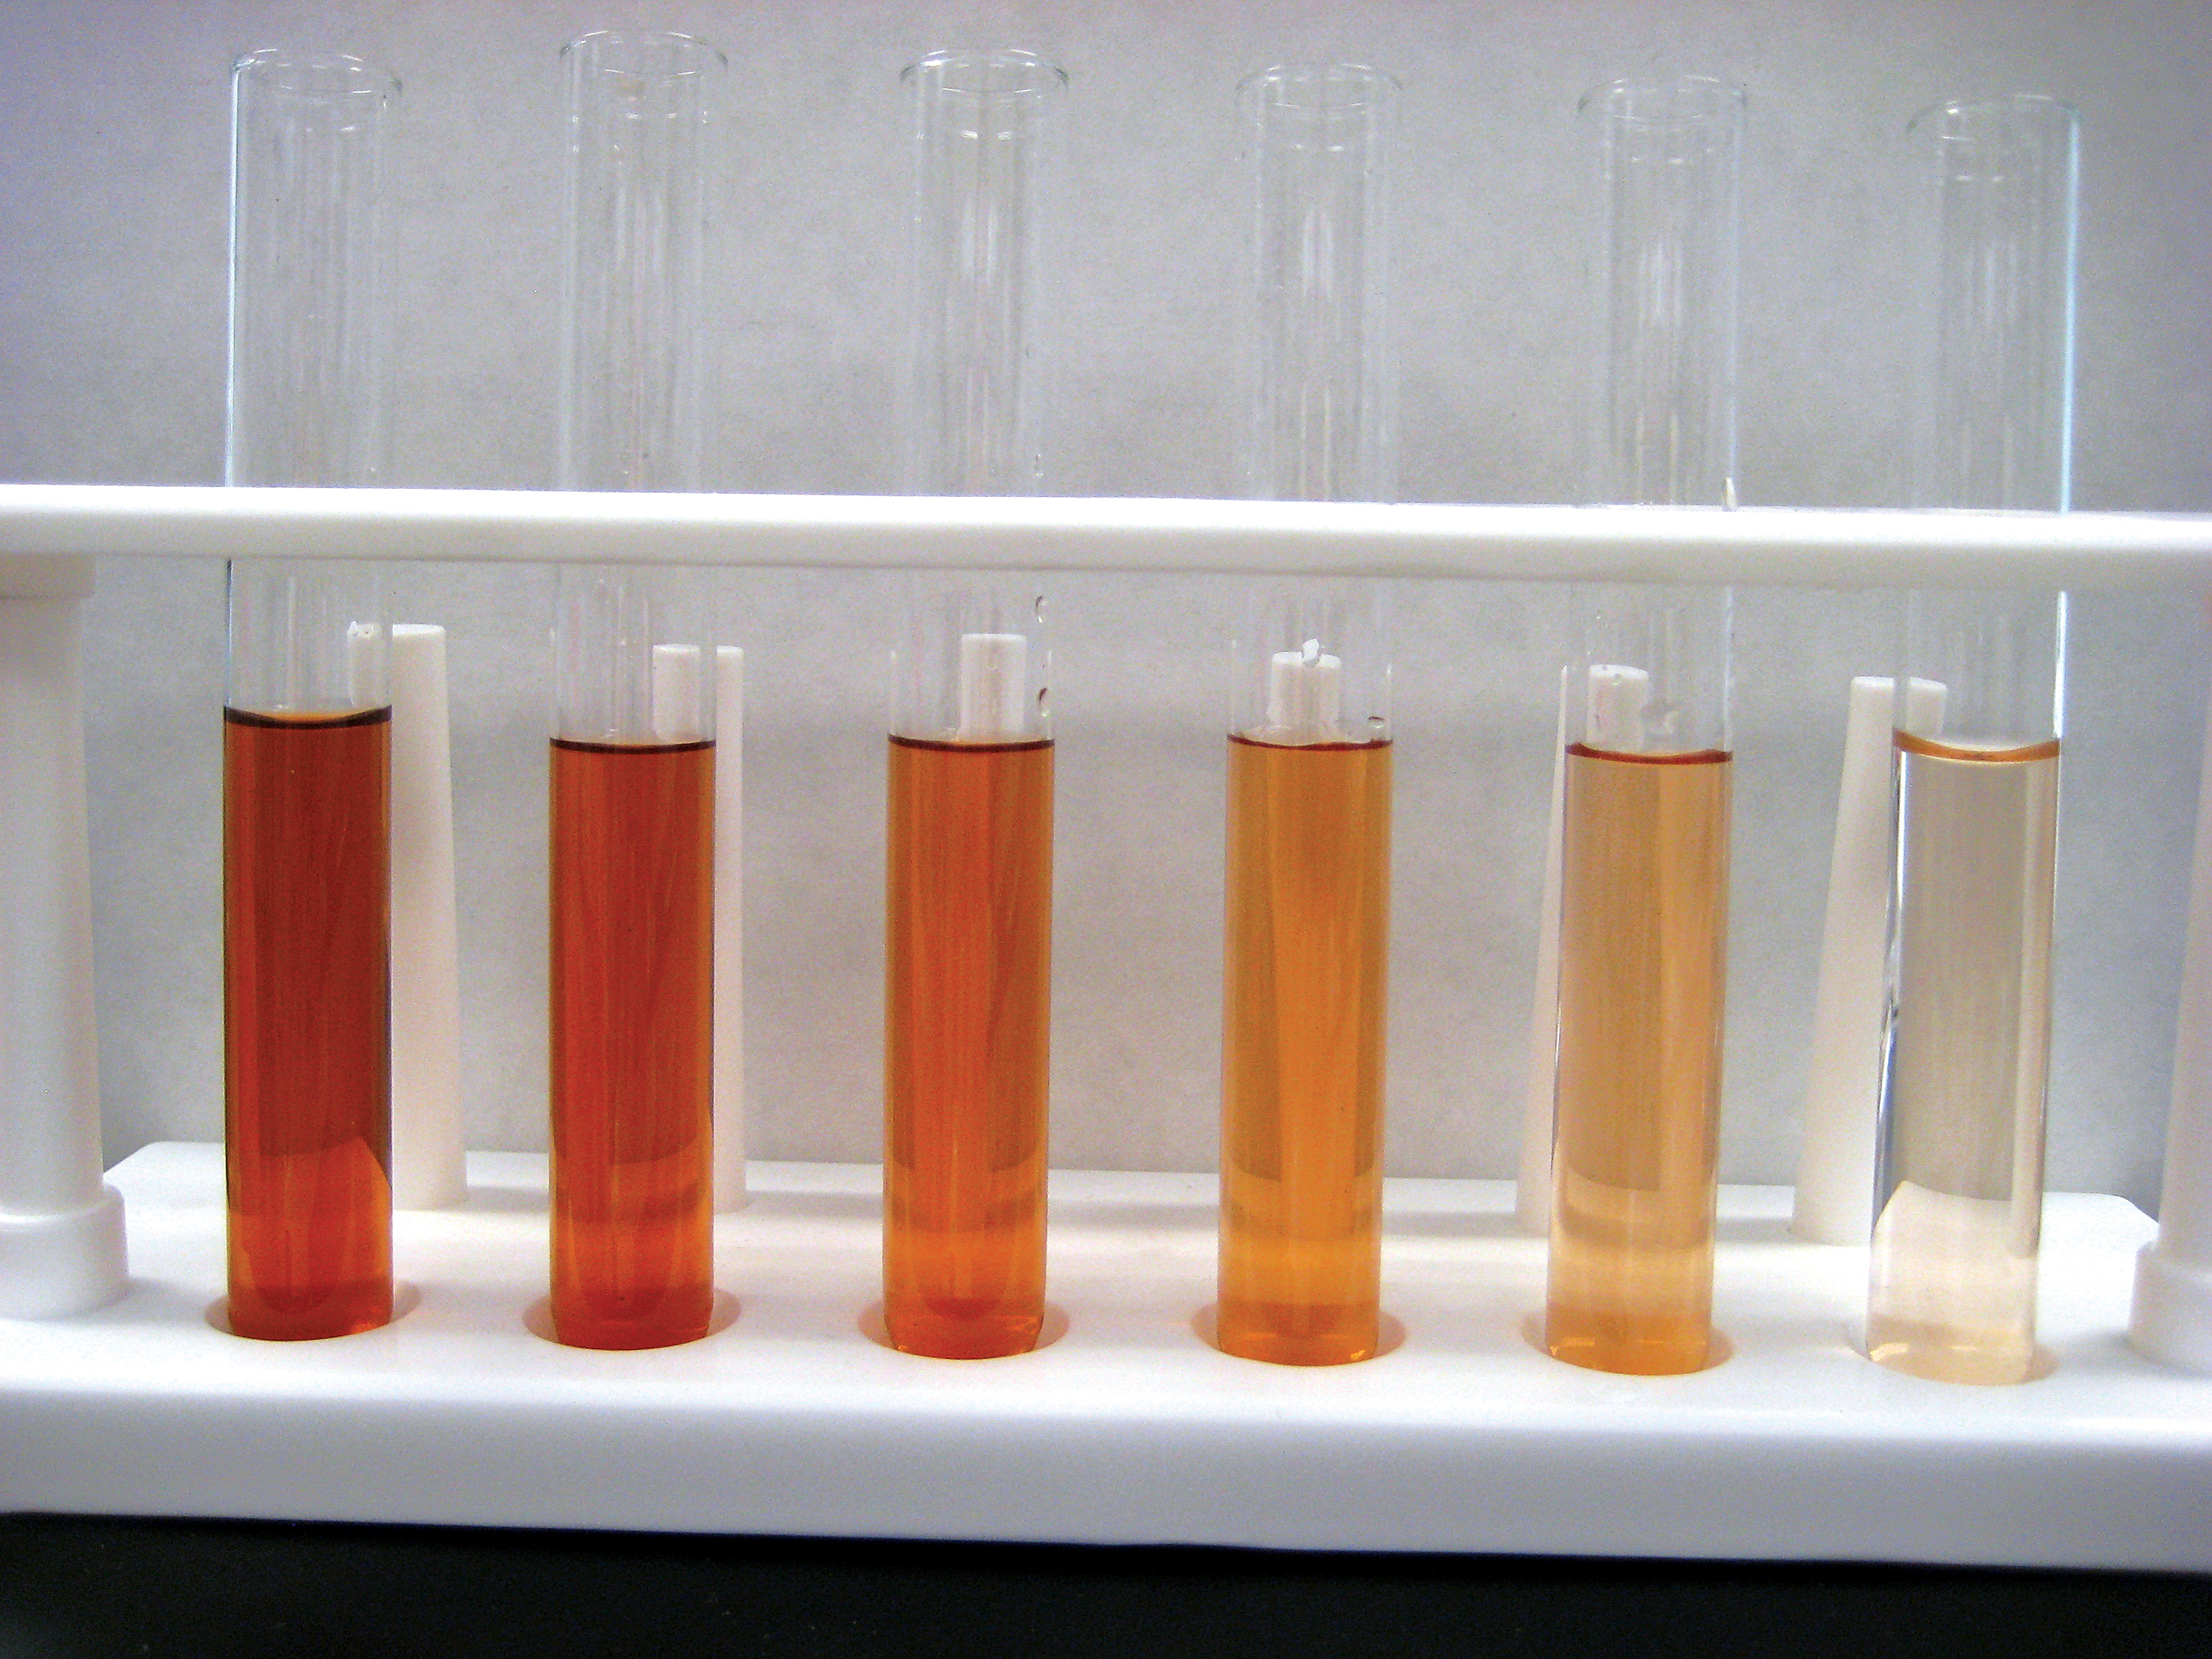 peroxidase enzyme lab Peroxidase is an enzyme found in a wide variety of organisms, from plants to humans to bacteria its function is to break down hydrogen peroxide (h2o2), which is one of the toxins produced as a byproduct of using oxygen for respiration.